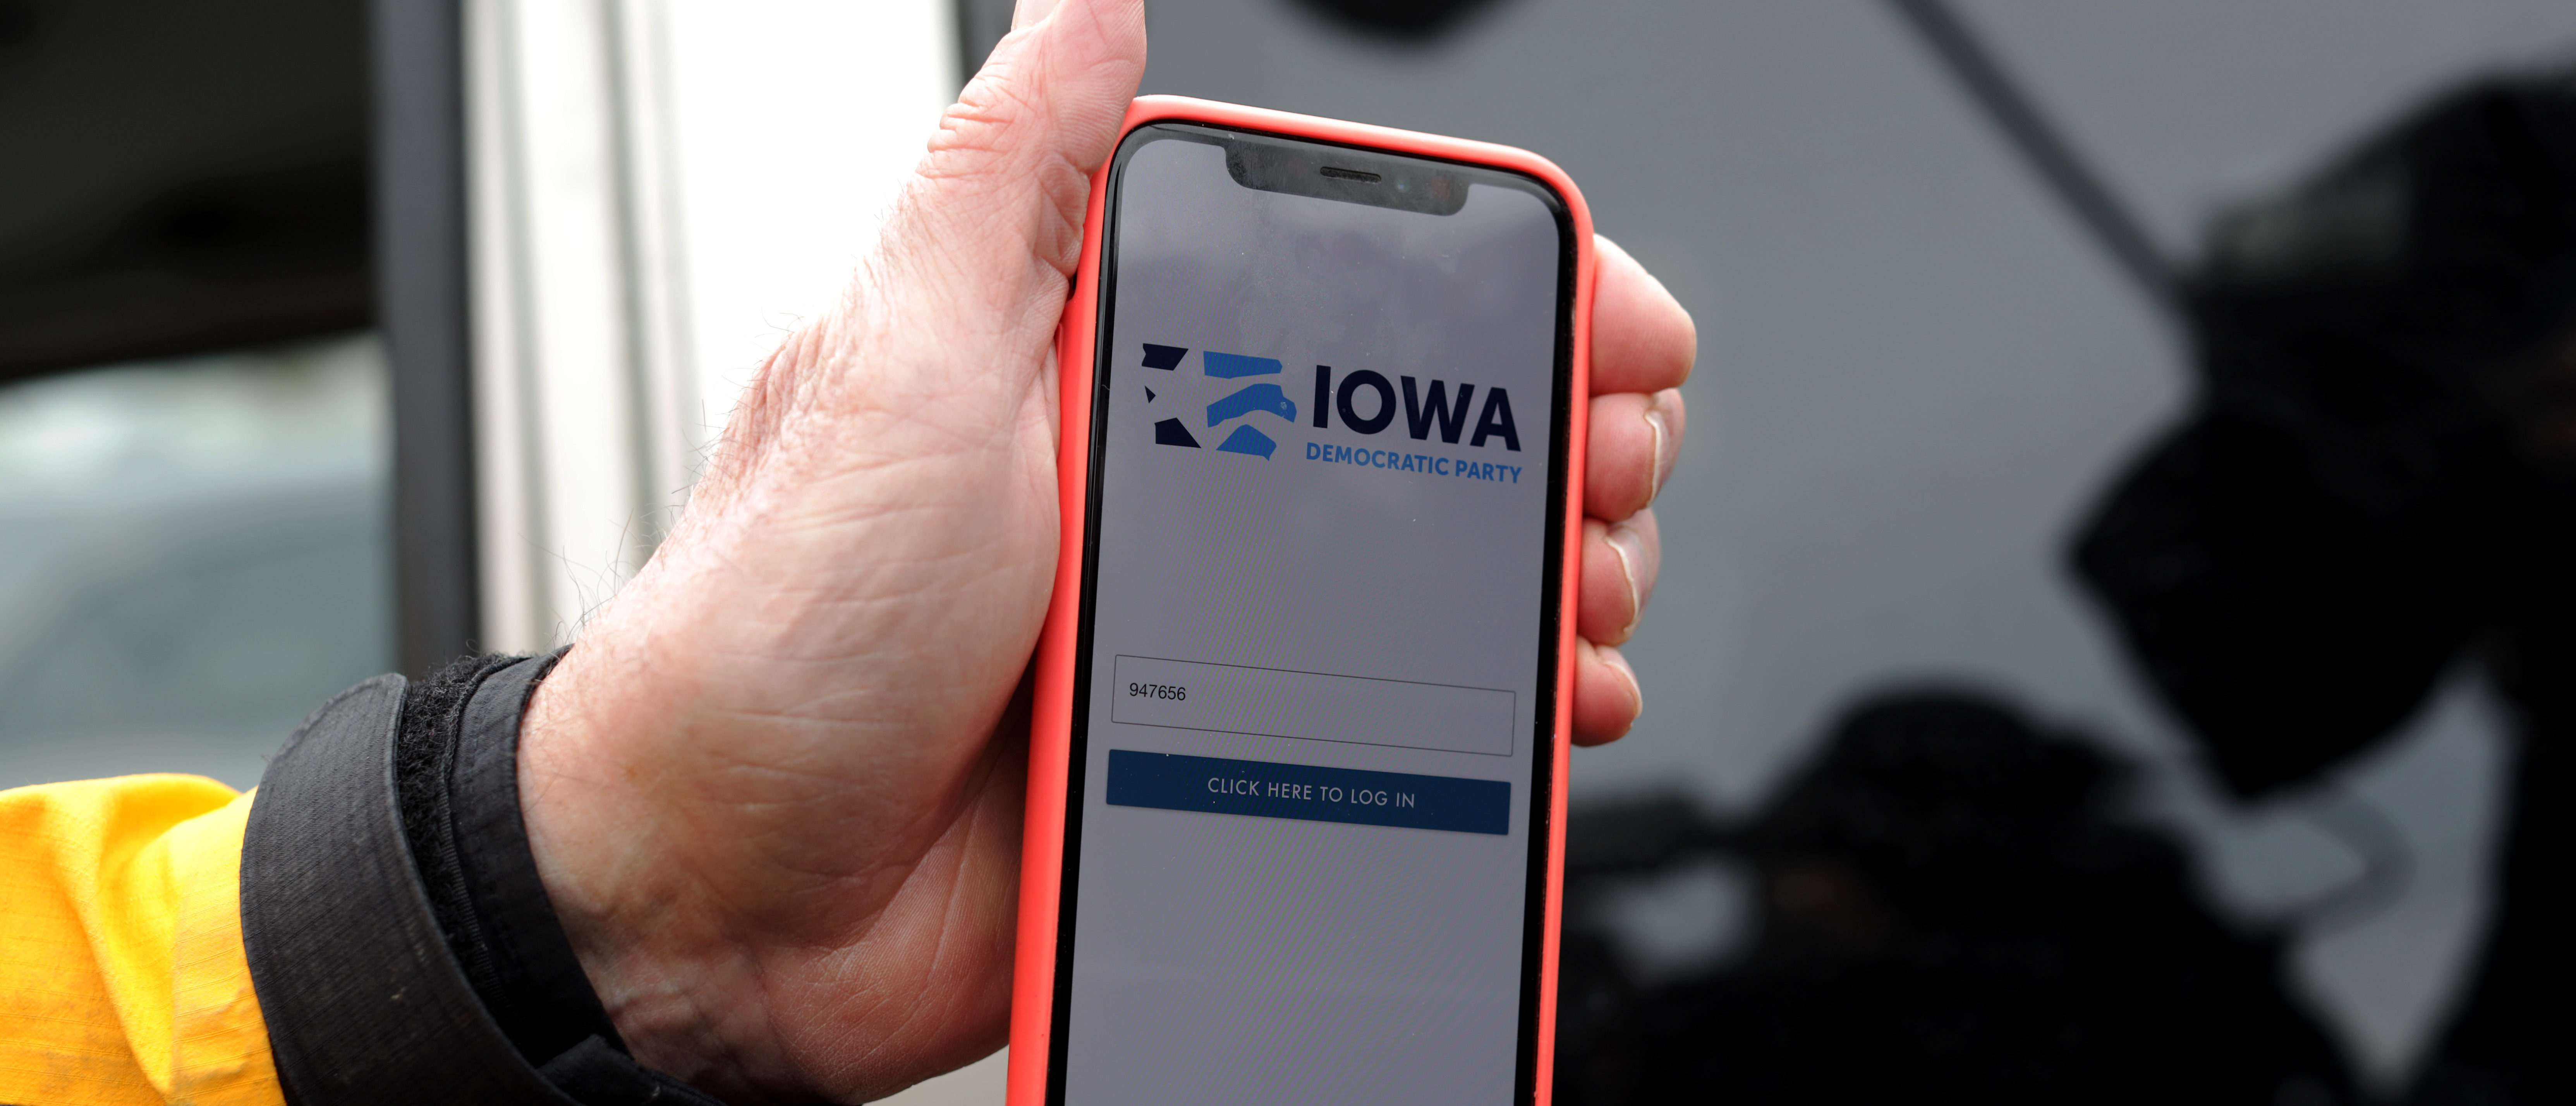 Carl Voss, Des Moines City Councilman and a precinct chair, shows photographers the app that was used for caucus results reporting on his phone after he unsuccessfully attempted to drop off a caucus results packet from Precinct 55 at the Iowa Democratic Party headquarters February 4, 2020 in Des Moines, Iowa. (Alex Wong/Getty Images)